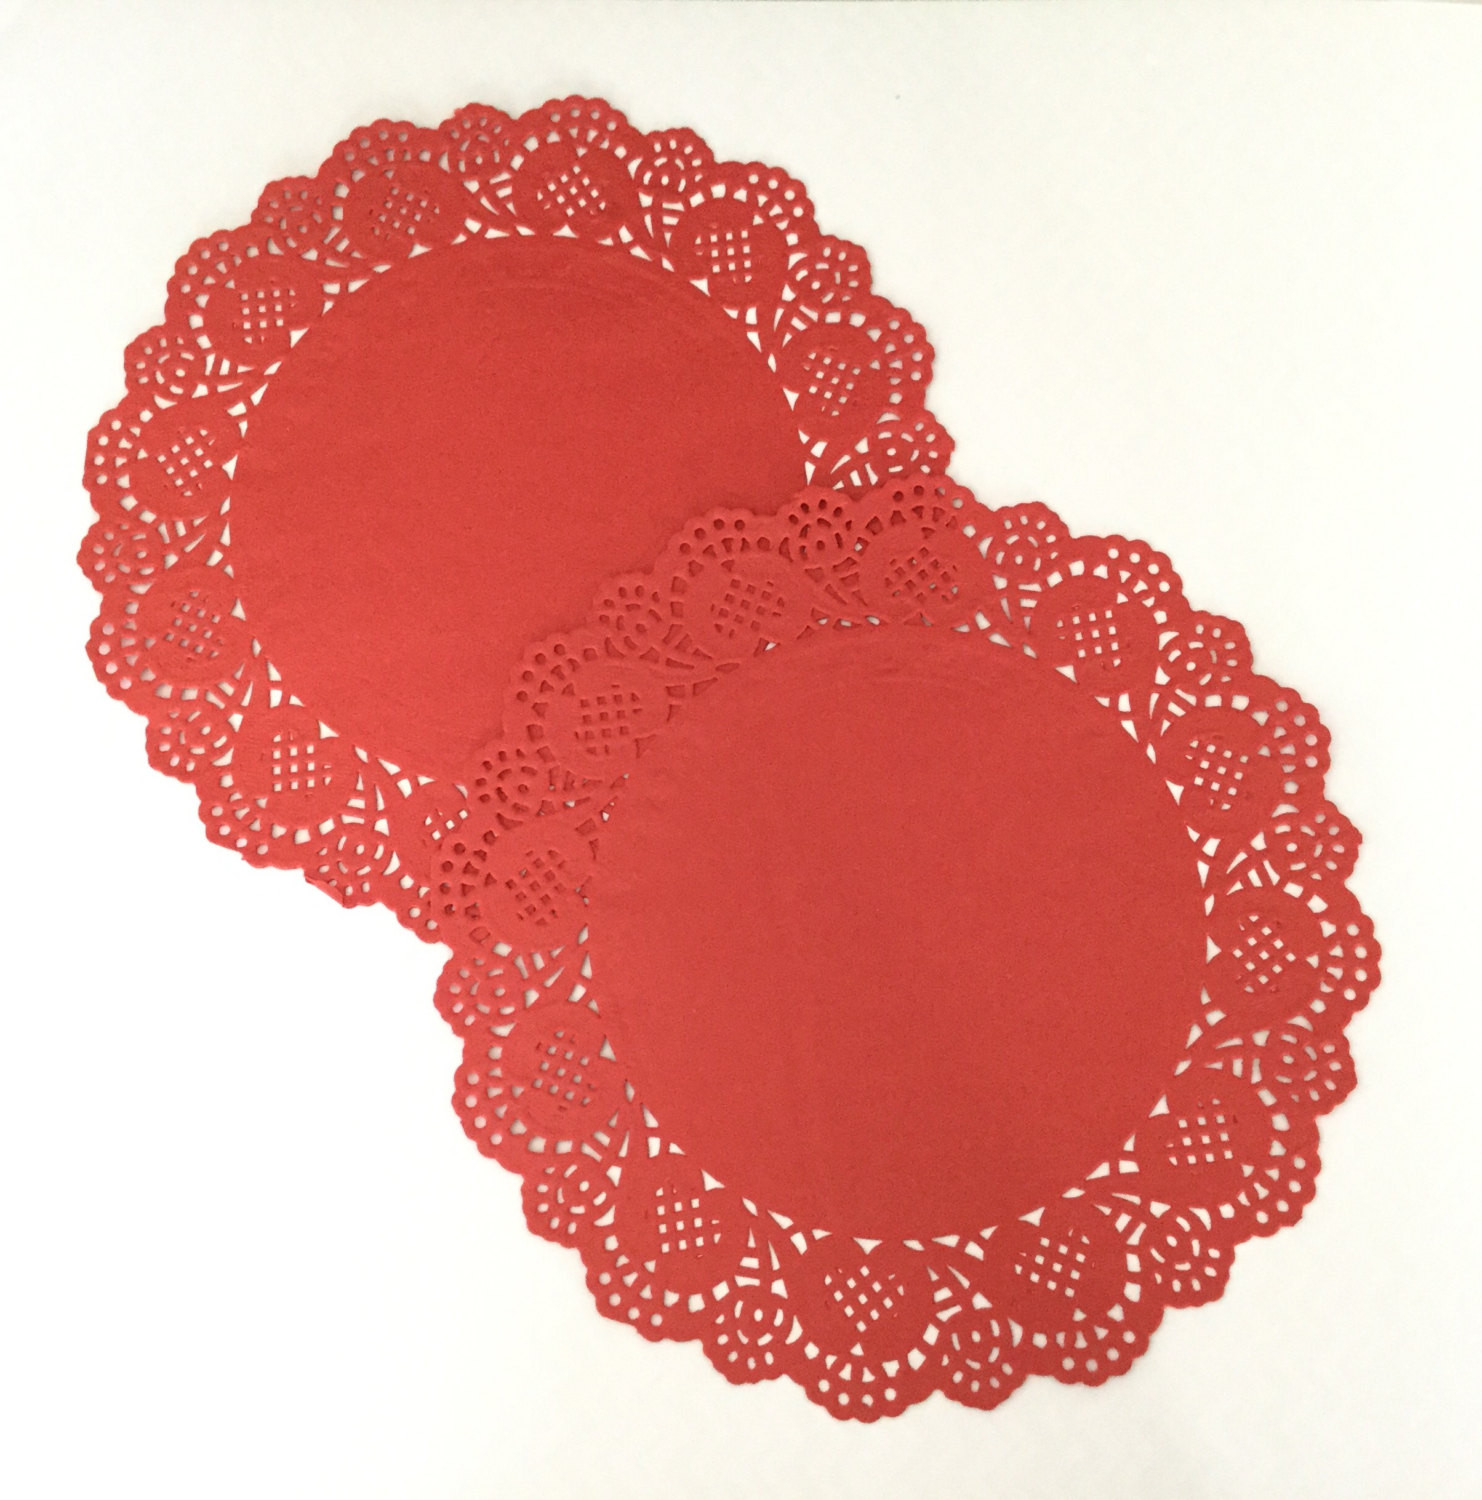 Red Doilies Luxury Red Doilies Paper Doily Craft Scrapbooking Valentine S Of Luxury 43 Images Red Doilies